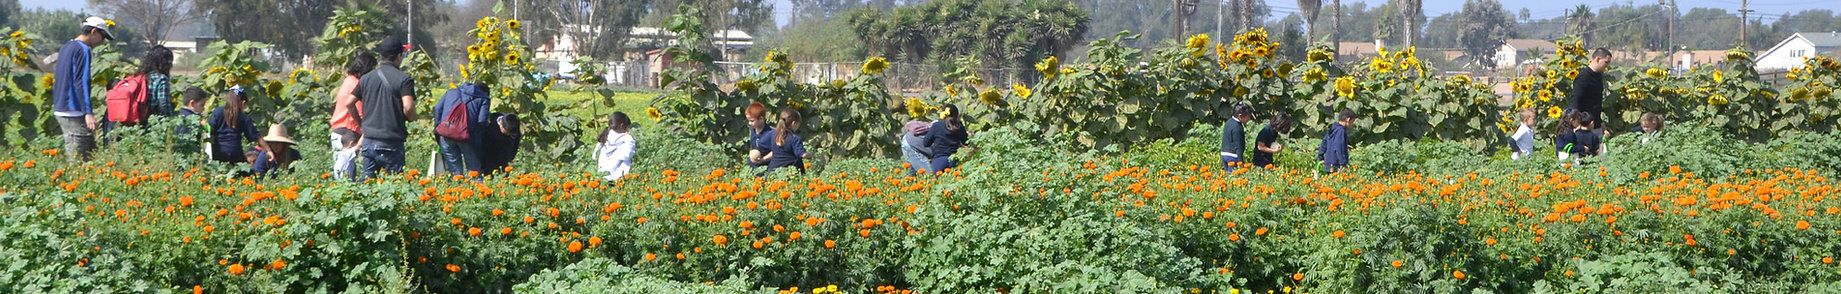 families outdoors in field of flowers, california